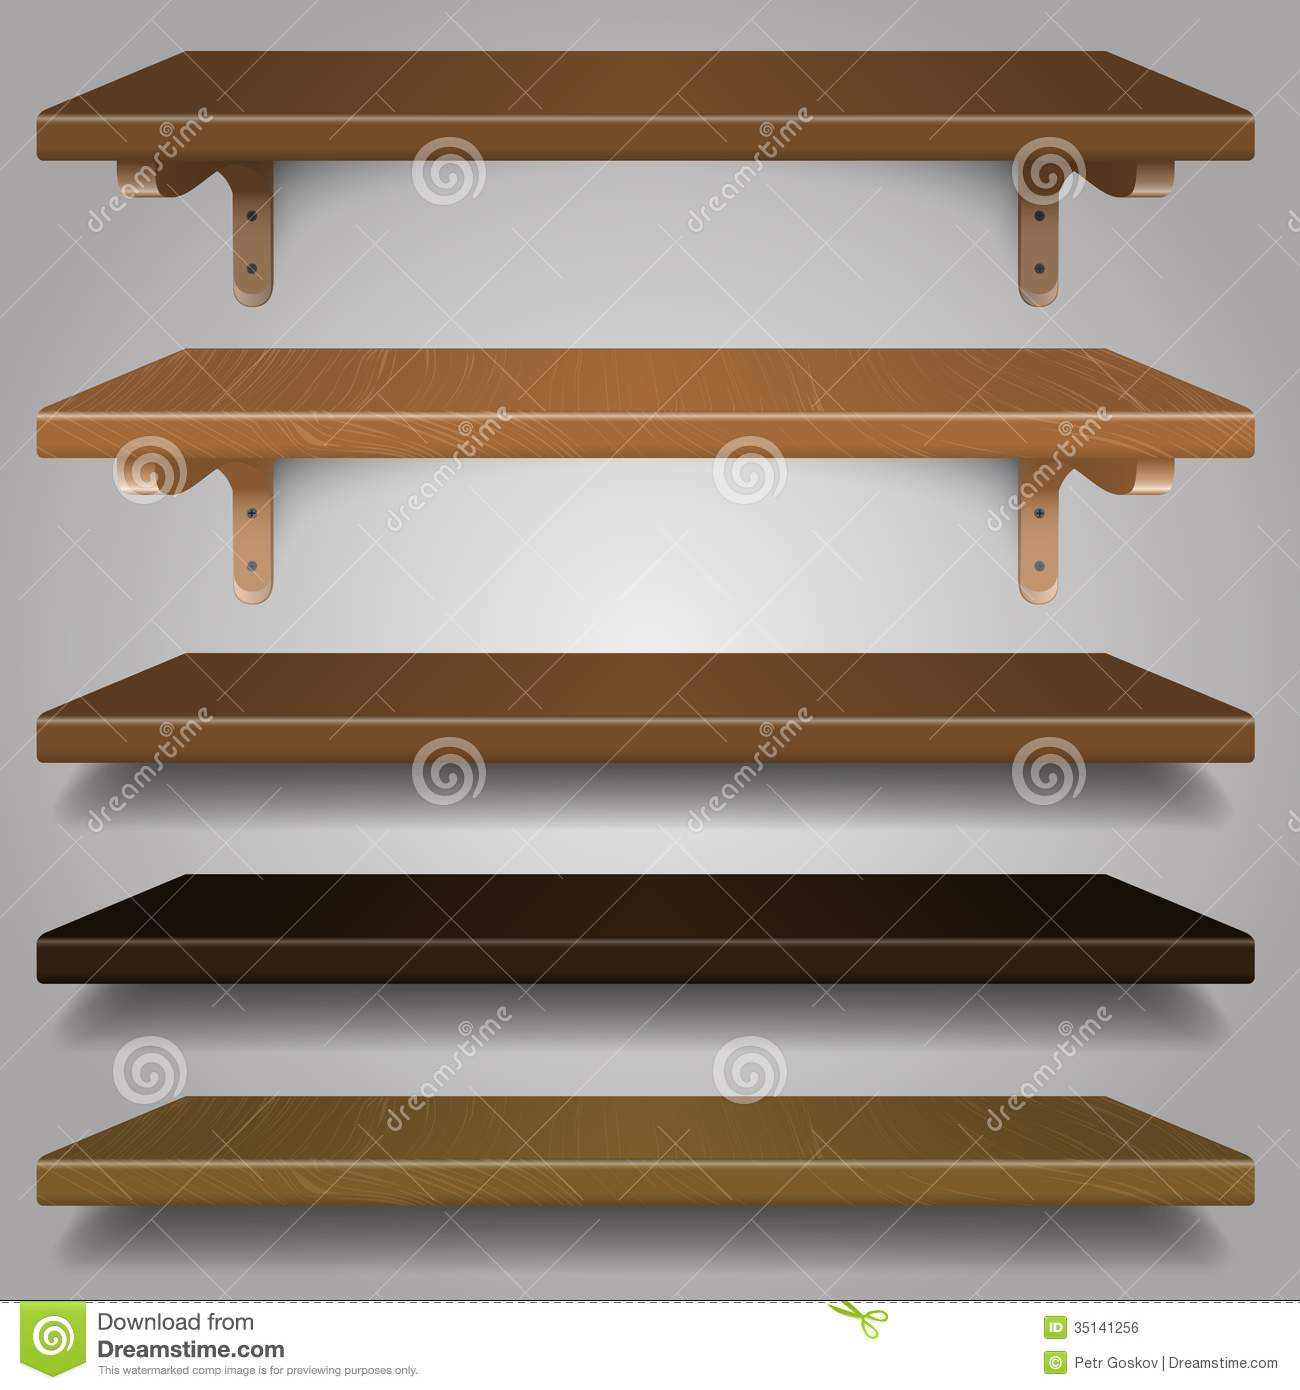 Vector - Wood Shelves, Royalty Free Stock Image - Image ...